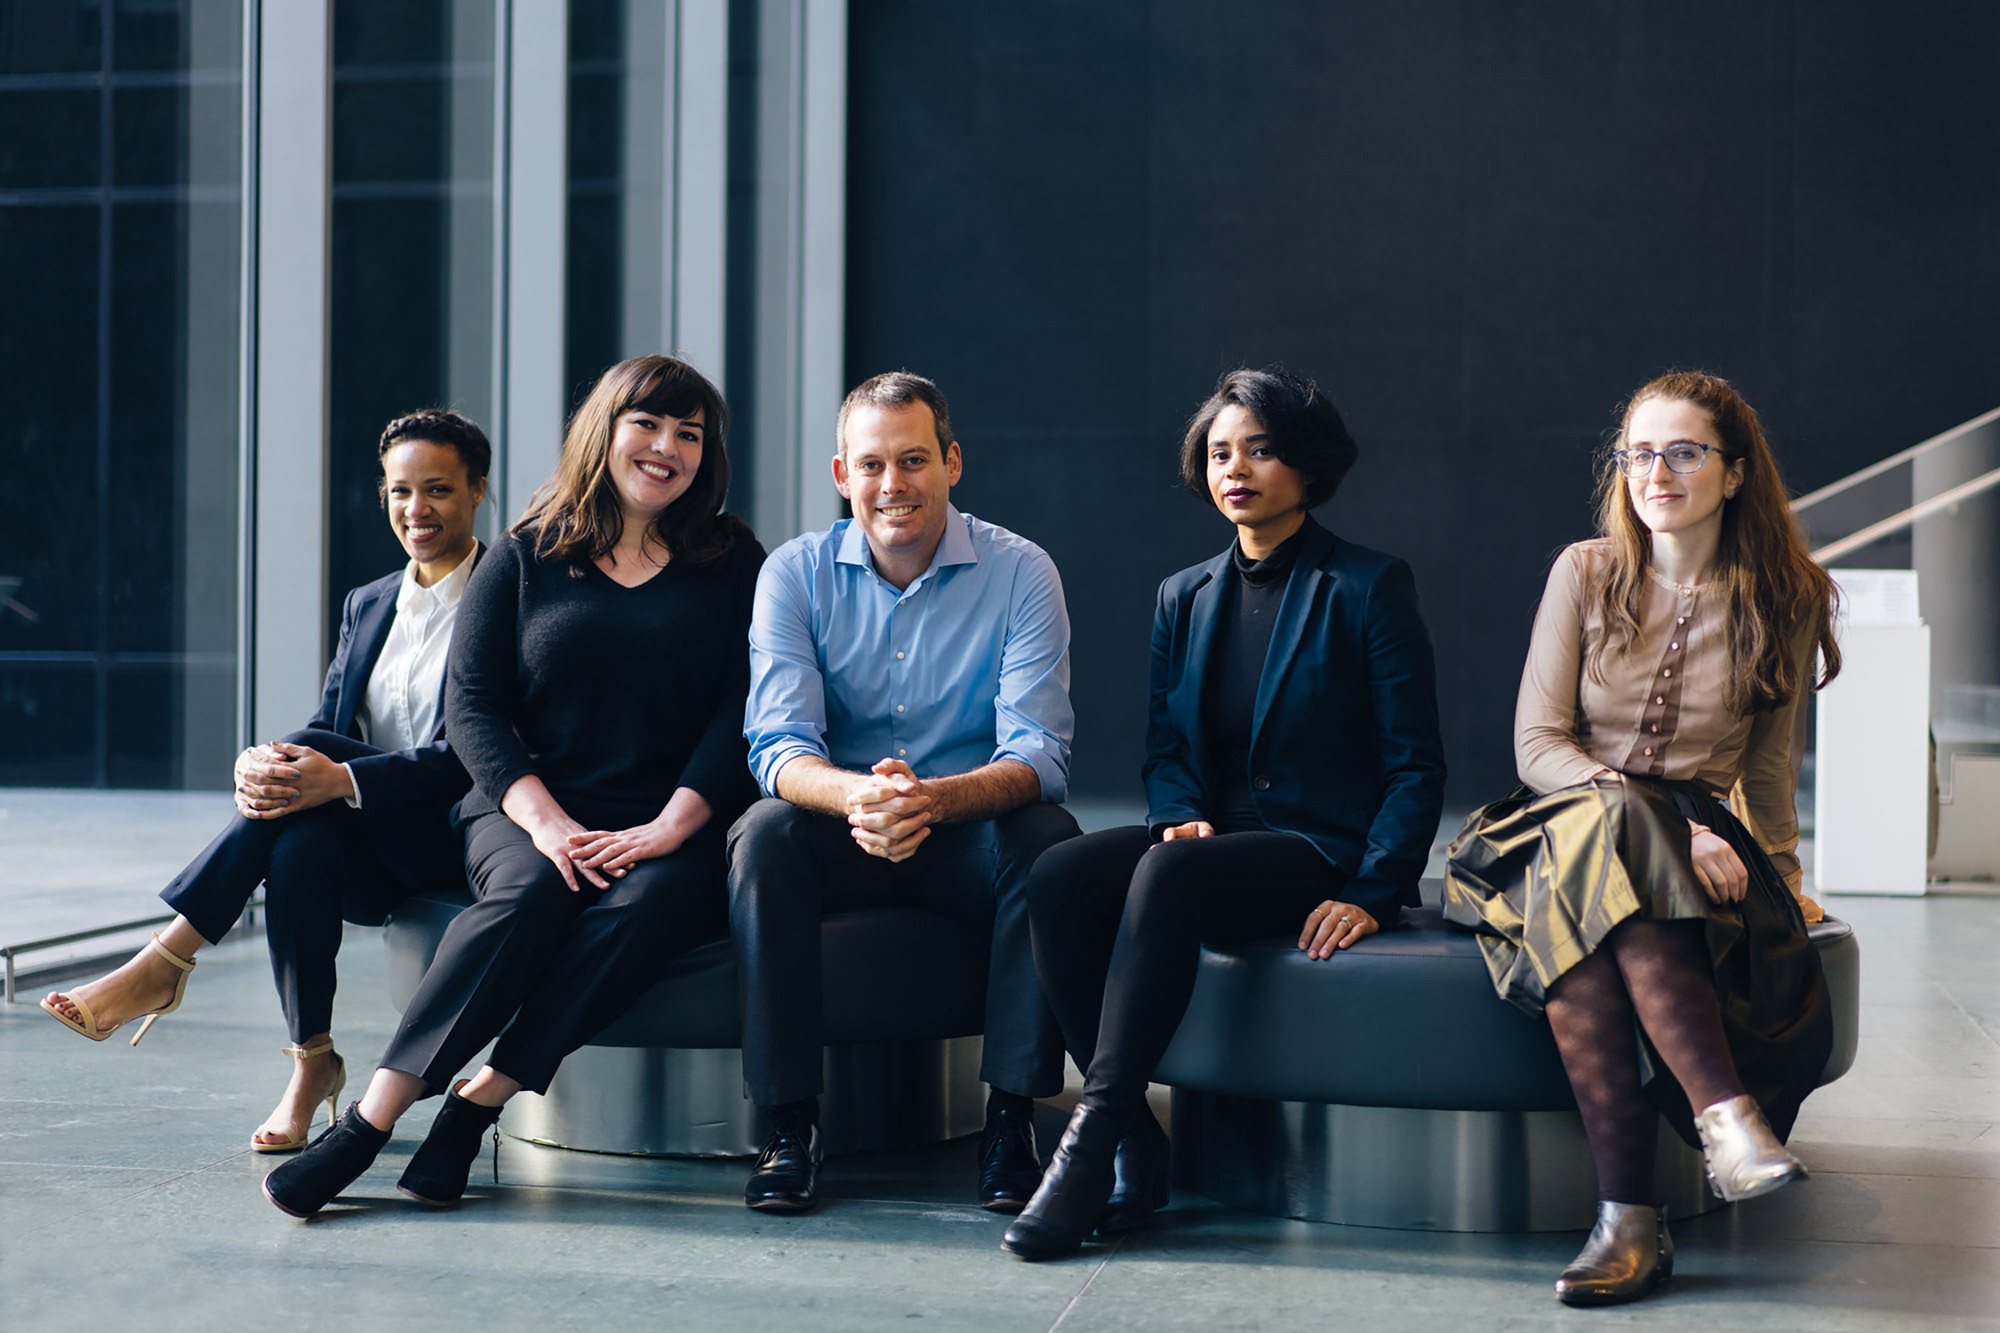 2016–17 MRC Fellows, from left: Ashley James, Elizabeth Gollnick, Matthew Worsnick, Jessica Bell Brown, and Abigail Lapin Dardashti. Photo: Amanda Kirkpatrick